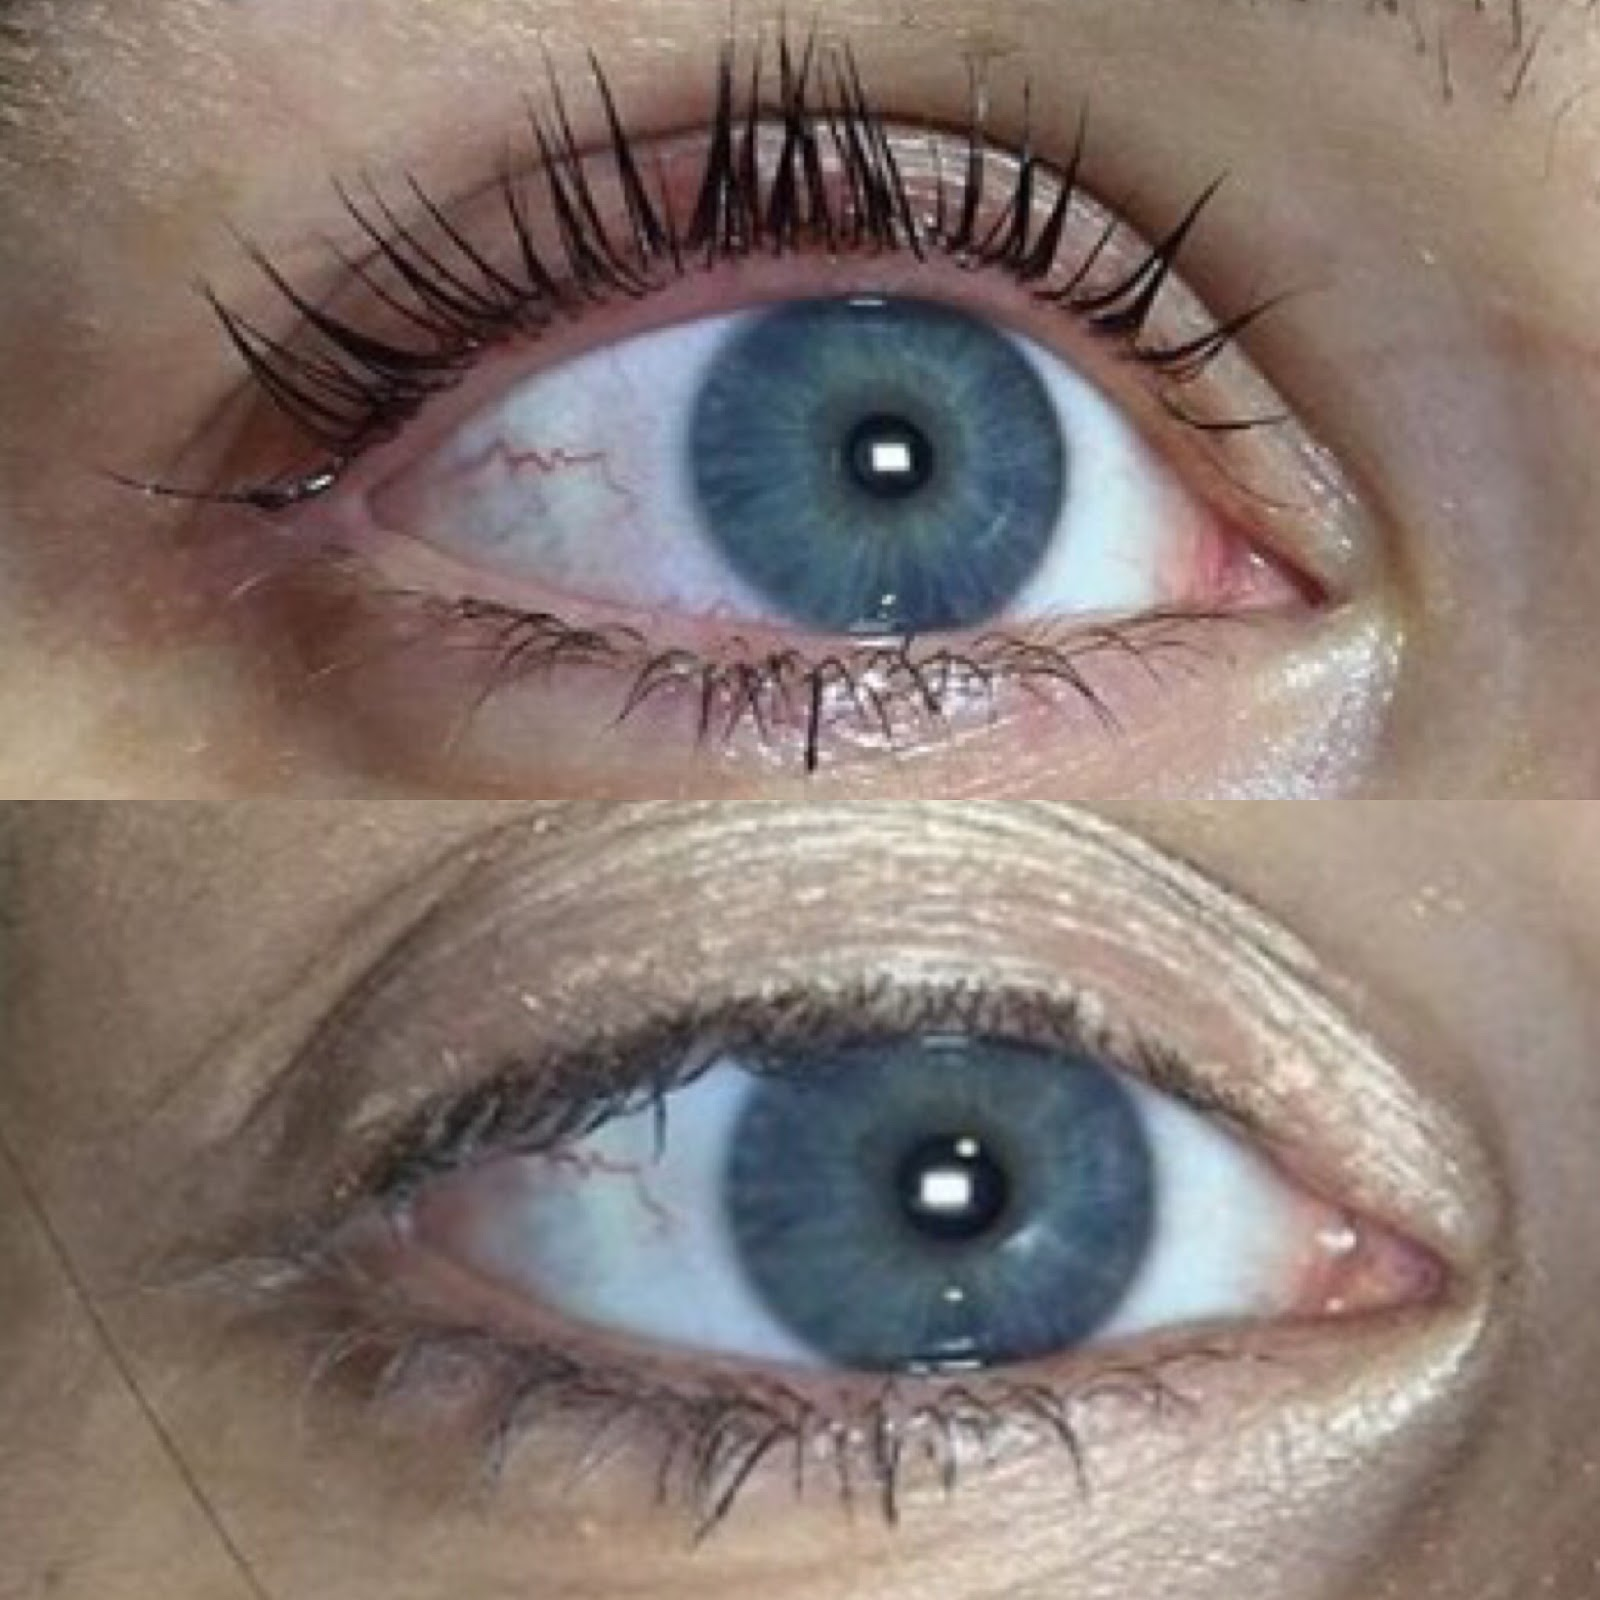 LVL lashes at Bloom Permanent Cosmetics Liverpool